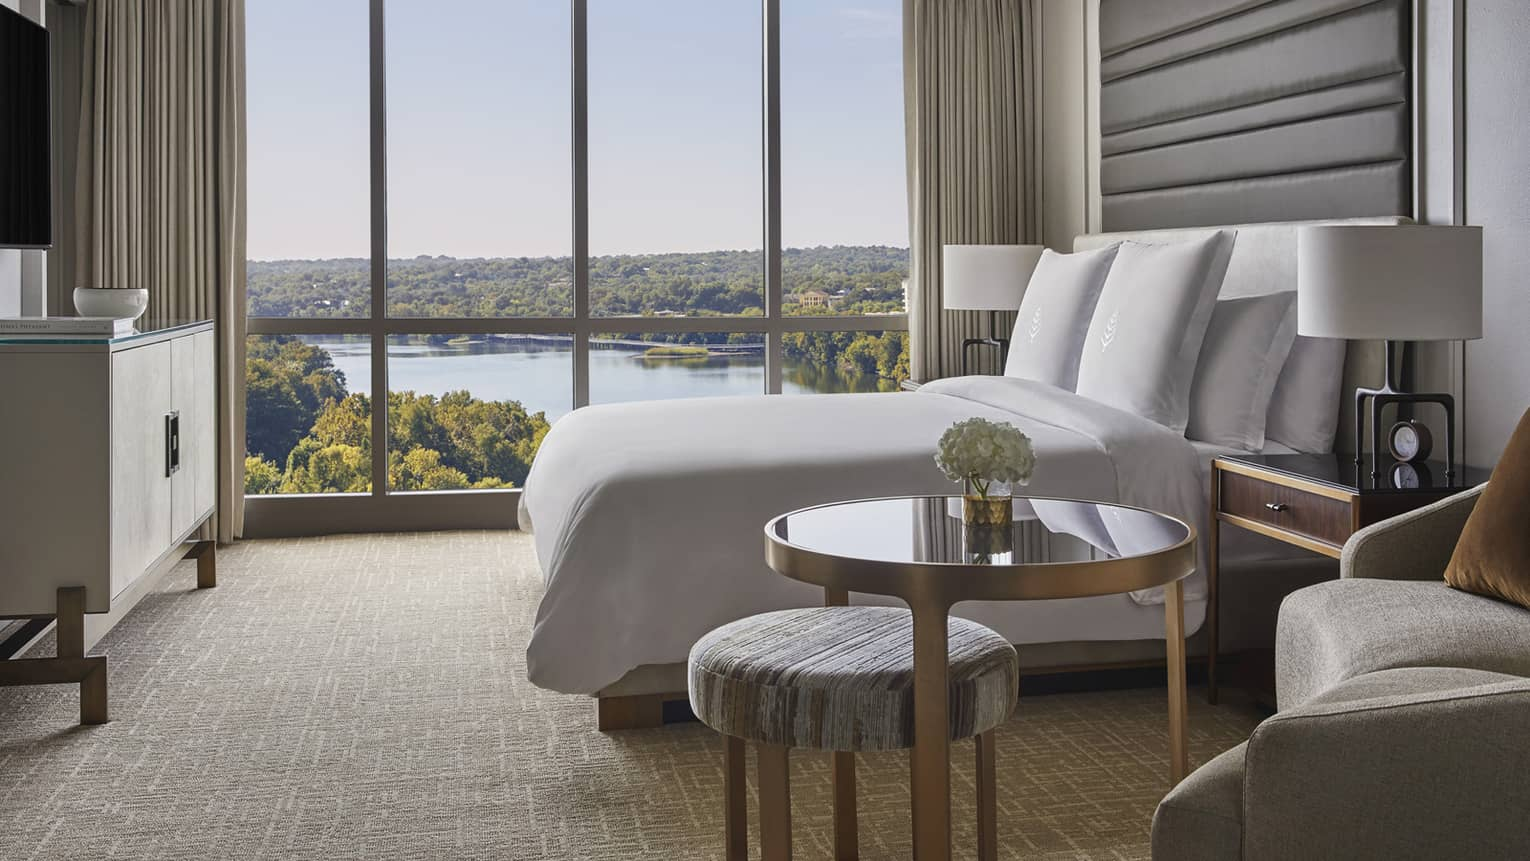 Side view of small brass and glass table, hotel bed by floor to ceiling window and lake views